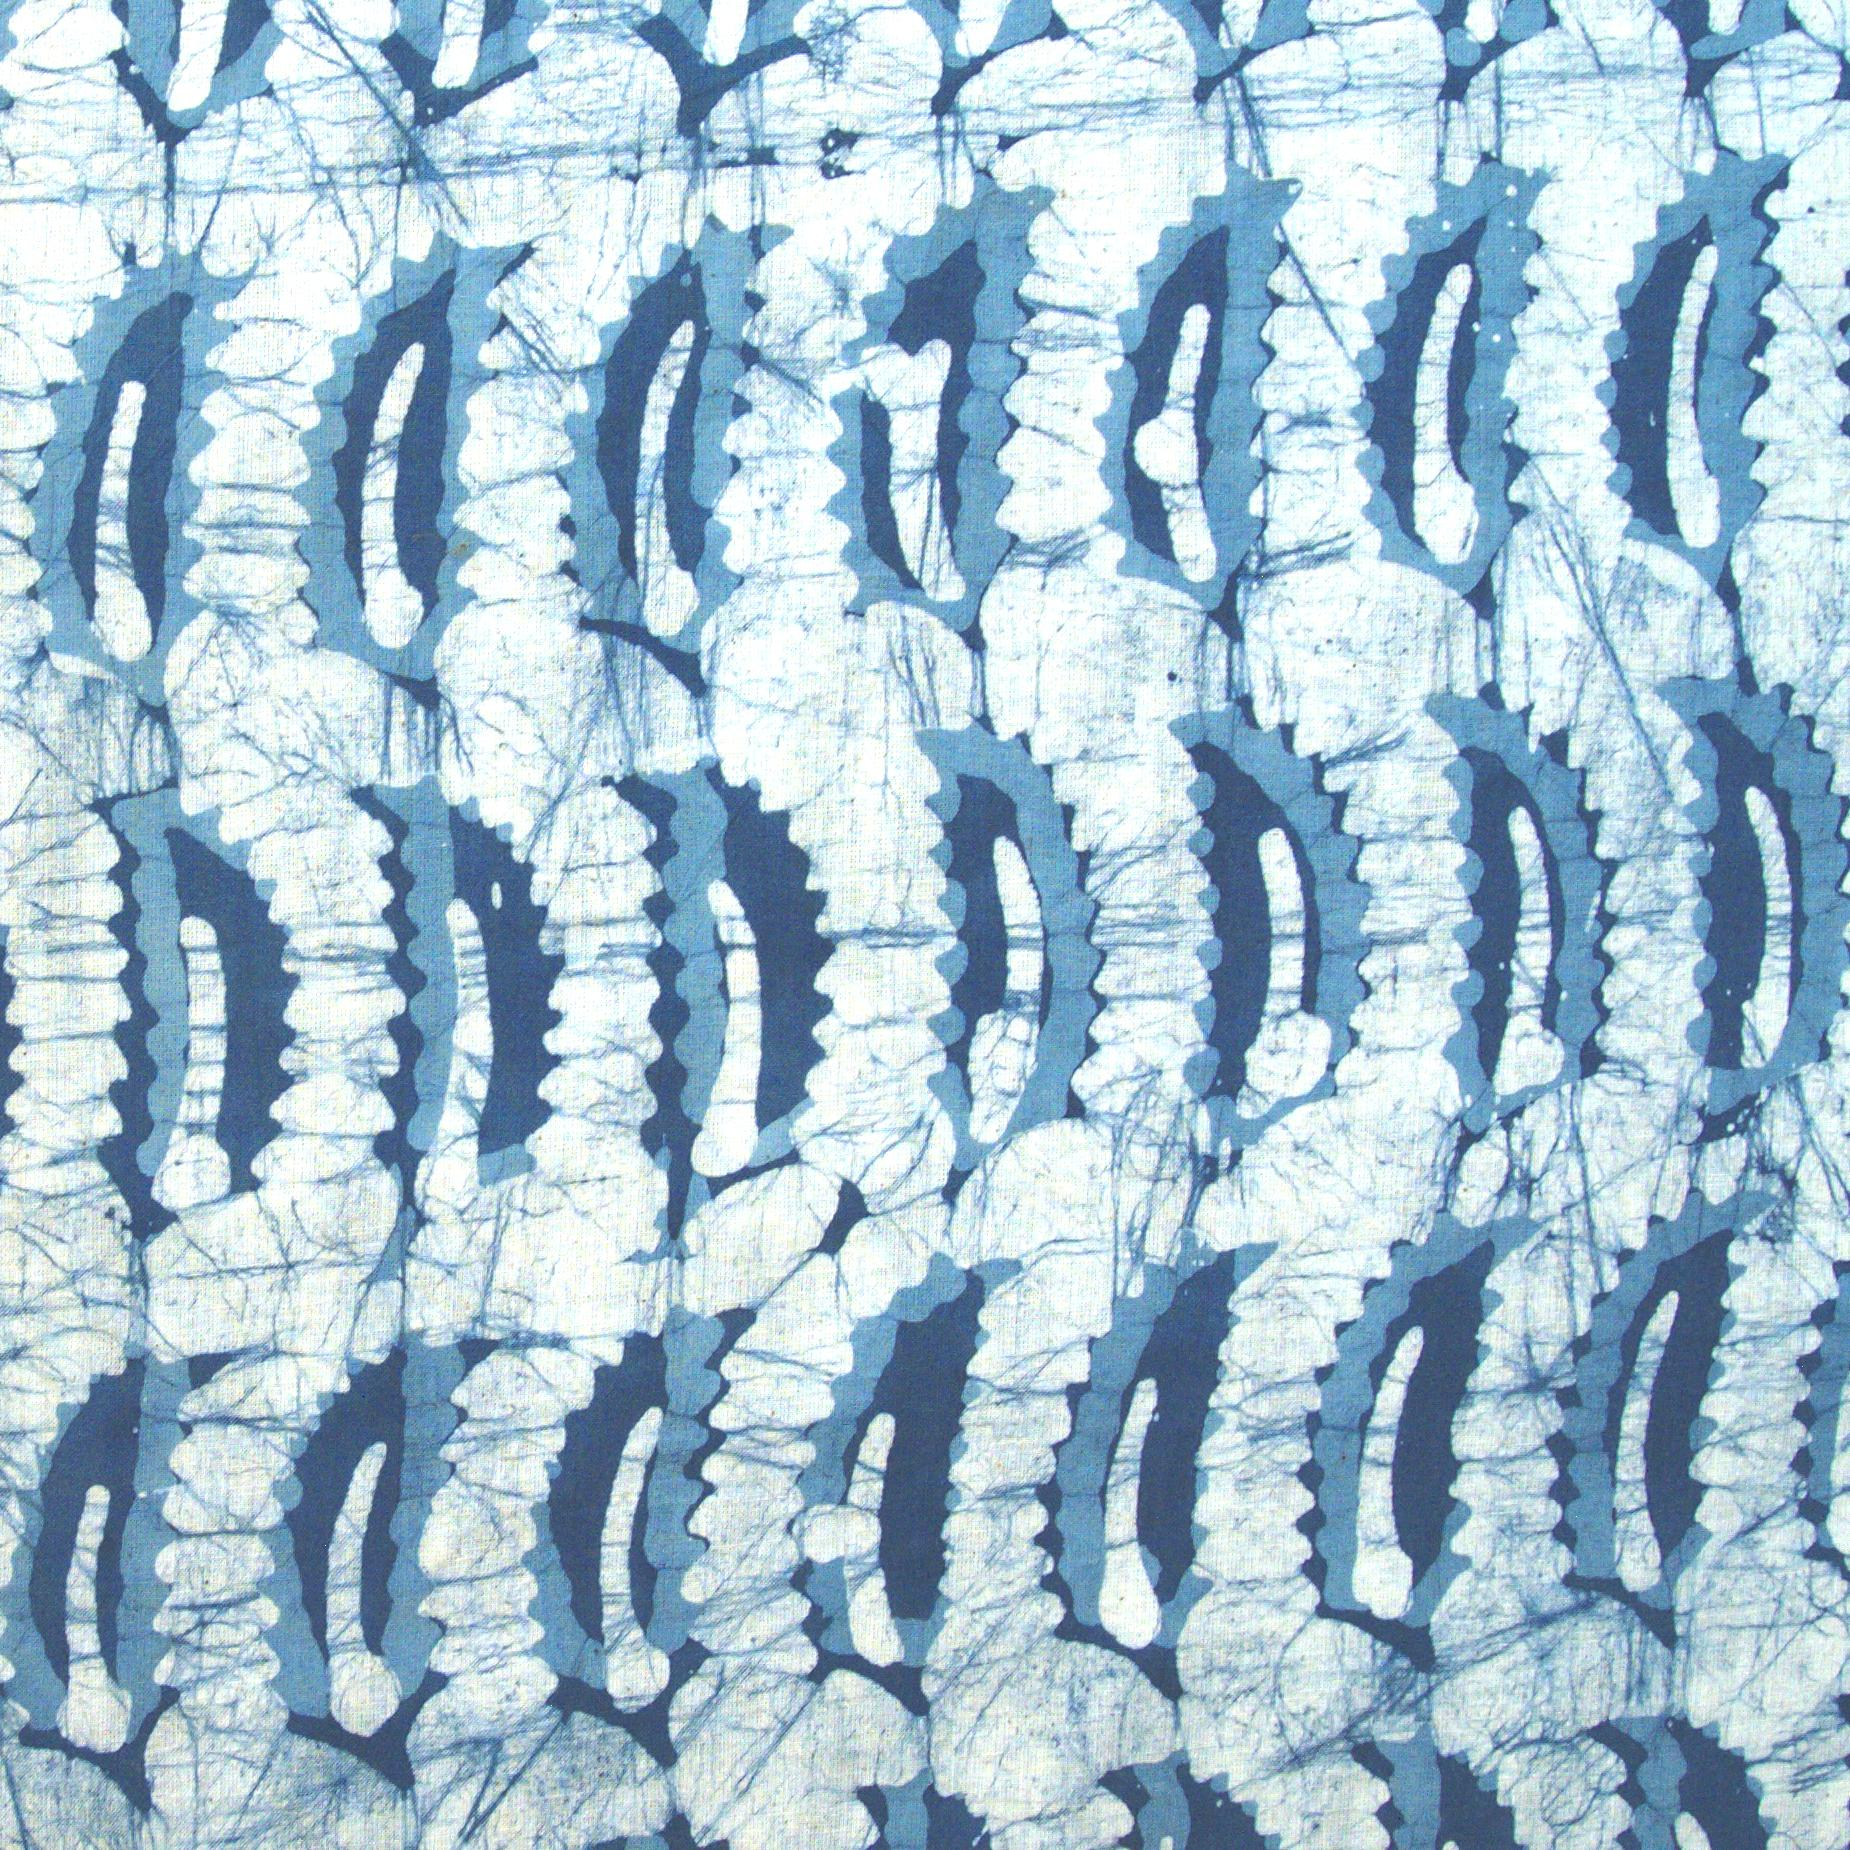 2 - SHA12 - 100% Block-Printed Batik Cotton Fabric From India - Batik - Blue Banana Leaves - Flat